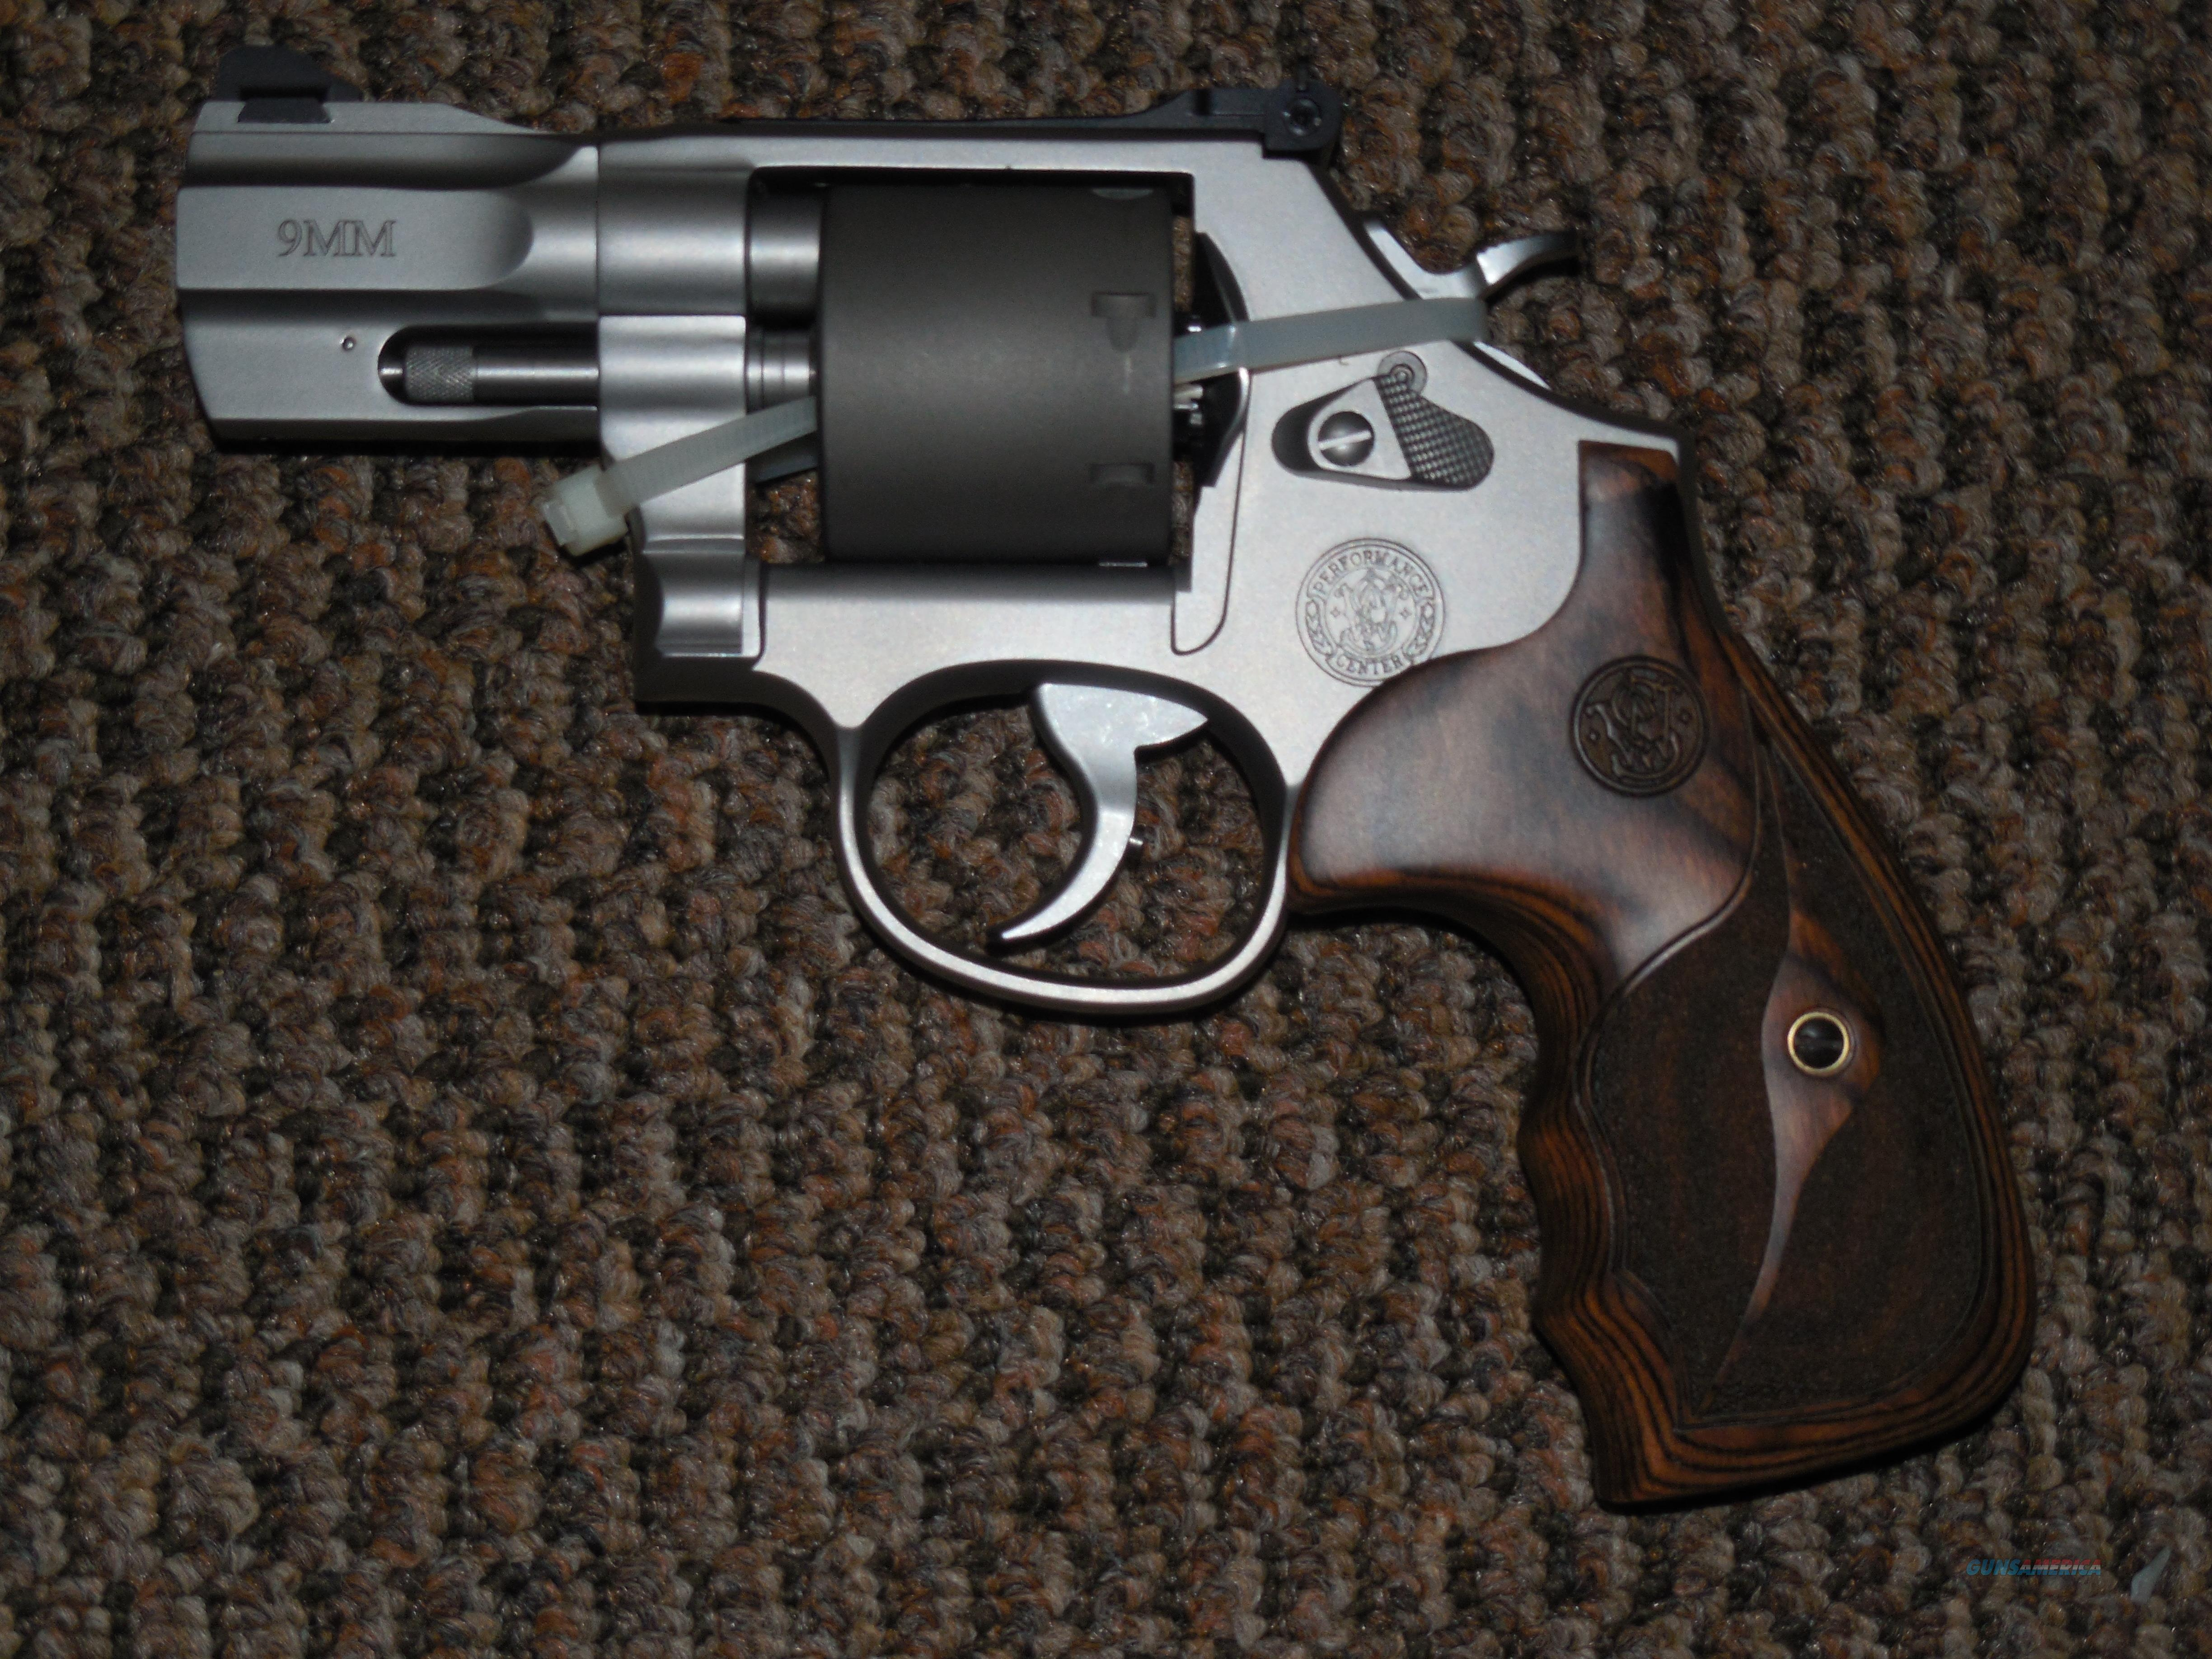 S&W MODEL 986 PERFORMNCE CENTER 9 MM REVOLVER WITH 2-5/8 INCH SLABSIDE BARREL  Guns > Pistols > Smith & Wesson Revolvers > Performance Center